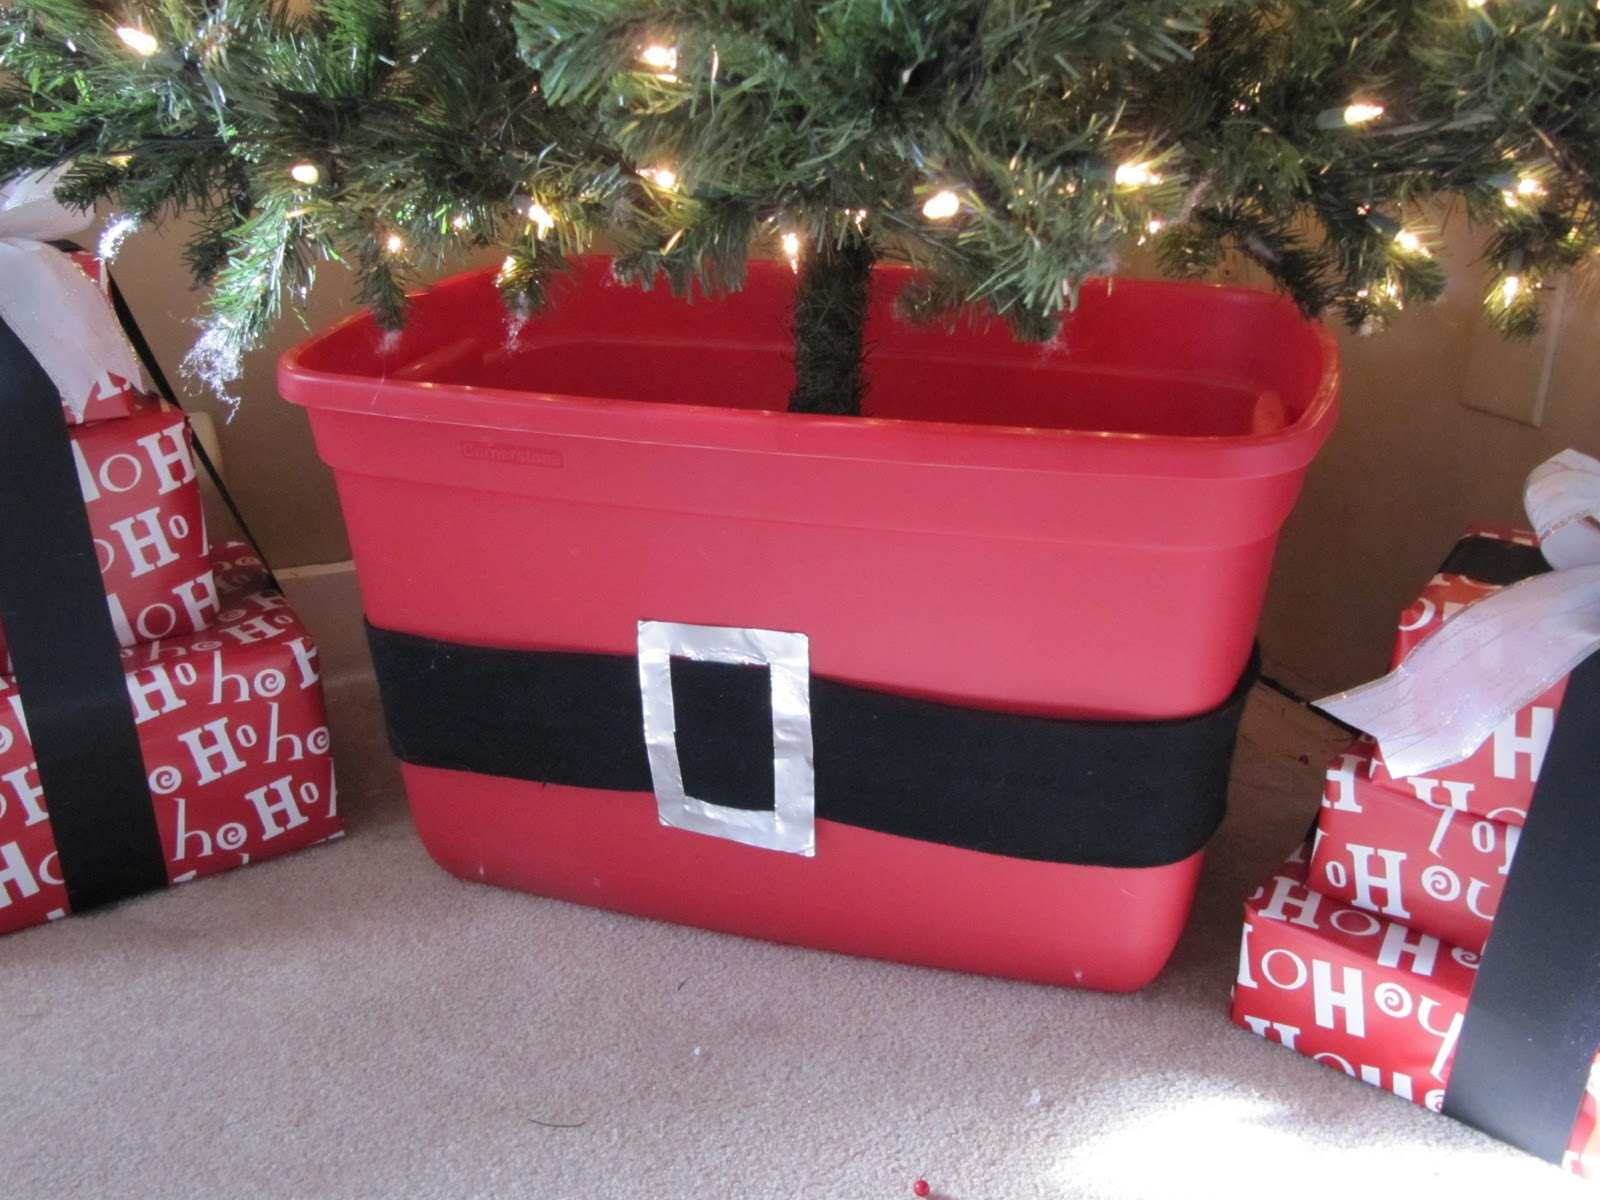 the tree stem was too tall and bare looking for me so hiding it in the container helps - Christmas Tree Storage Ideas